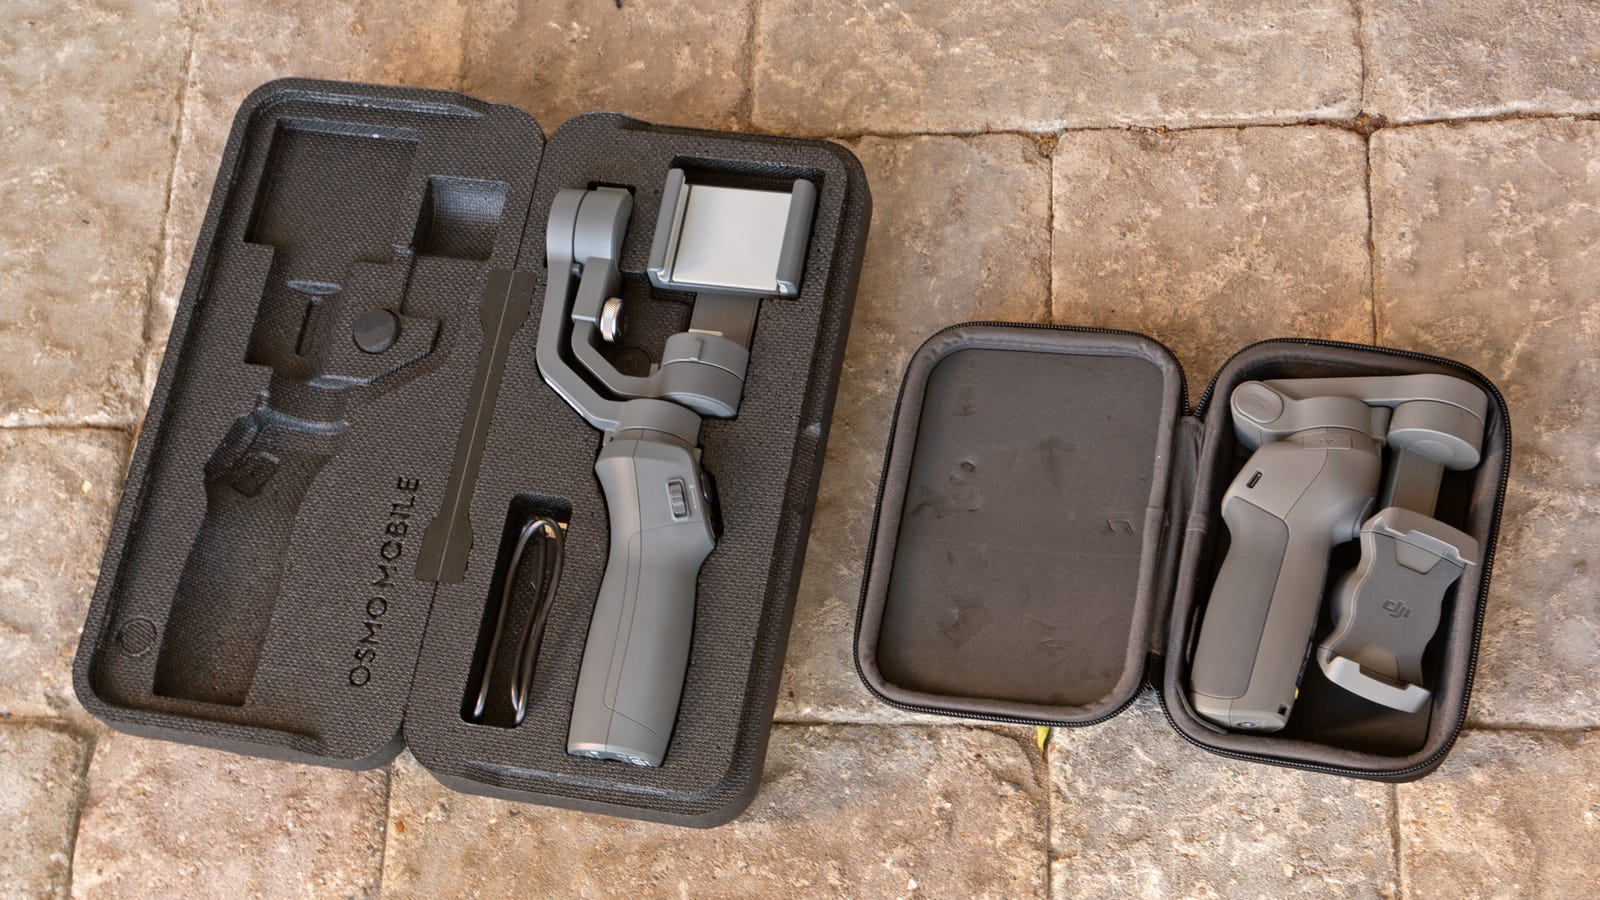 The DJI Osmo 2 (left) doesn't do much folding at all, while the DJI Osmo 3 collapses down to less than half the size of its predecessor.